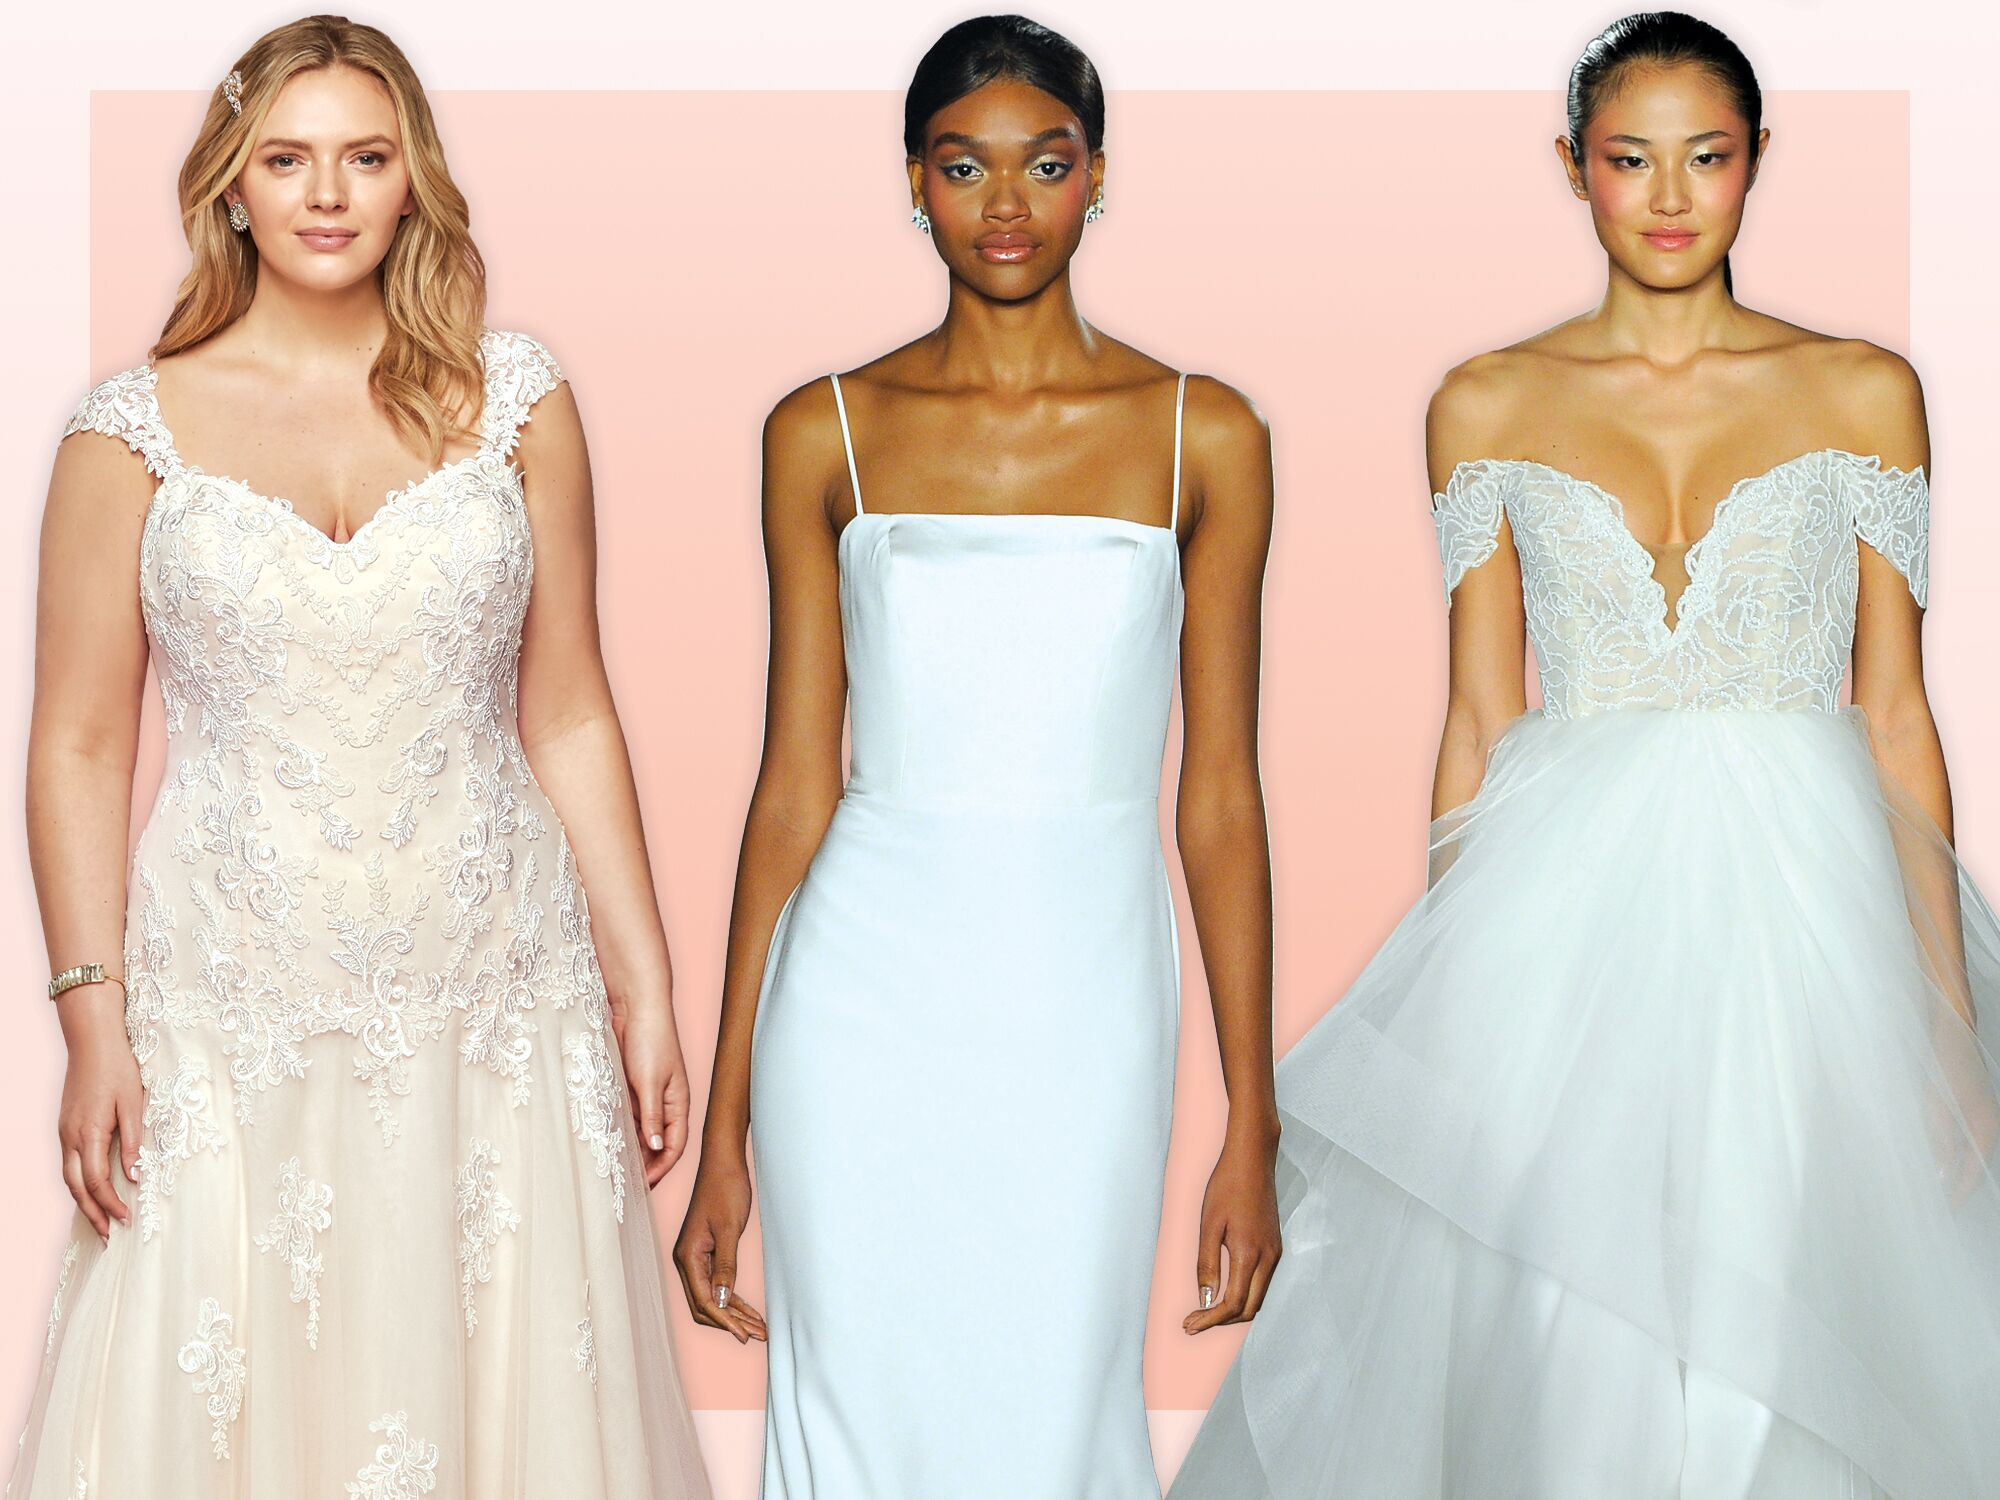 Wedding Dress Silhouettes The Best Wedding Dress For Your Body Type